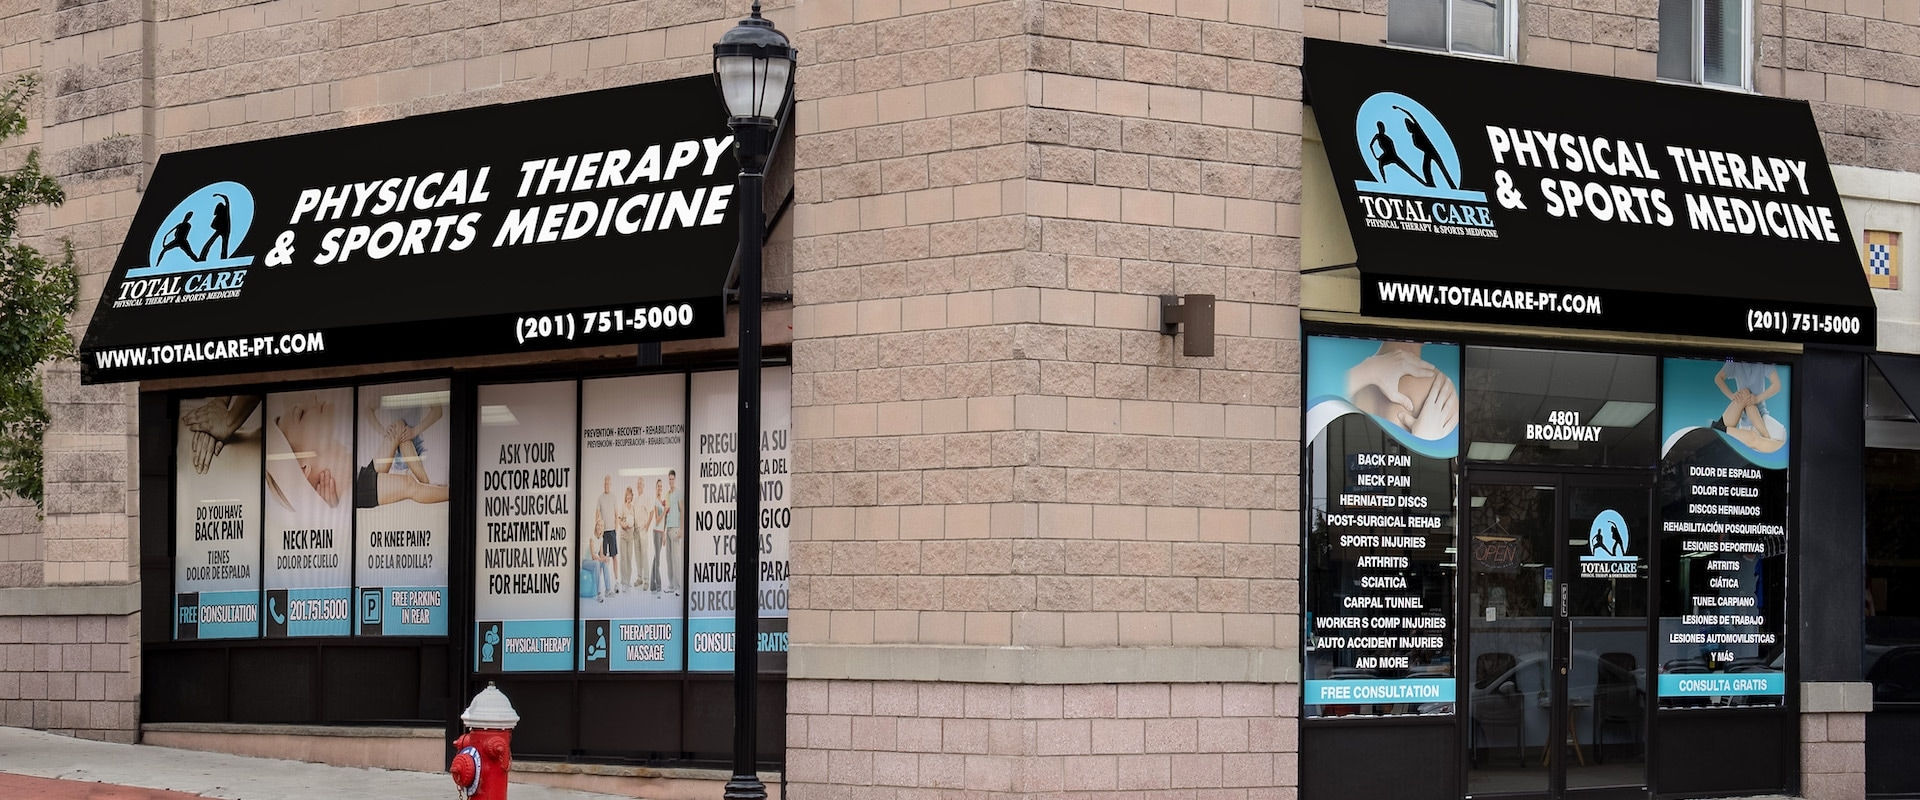 Total Care Physical Therapy & Sports Medicine  (@totalcarept) Cover Image